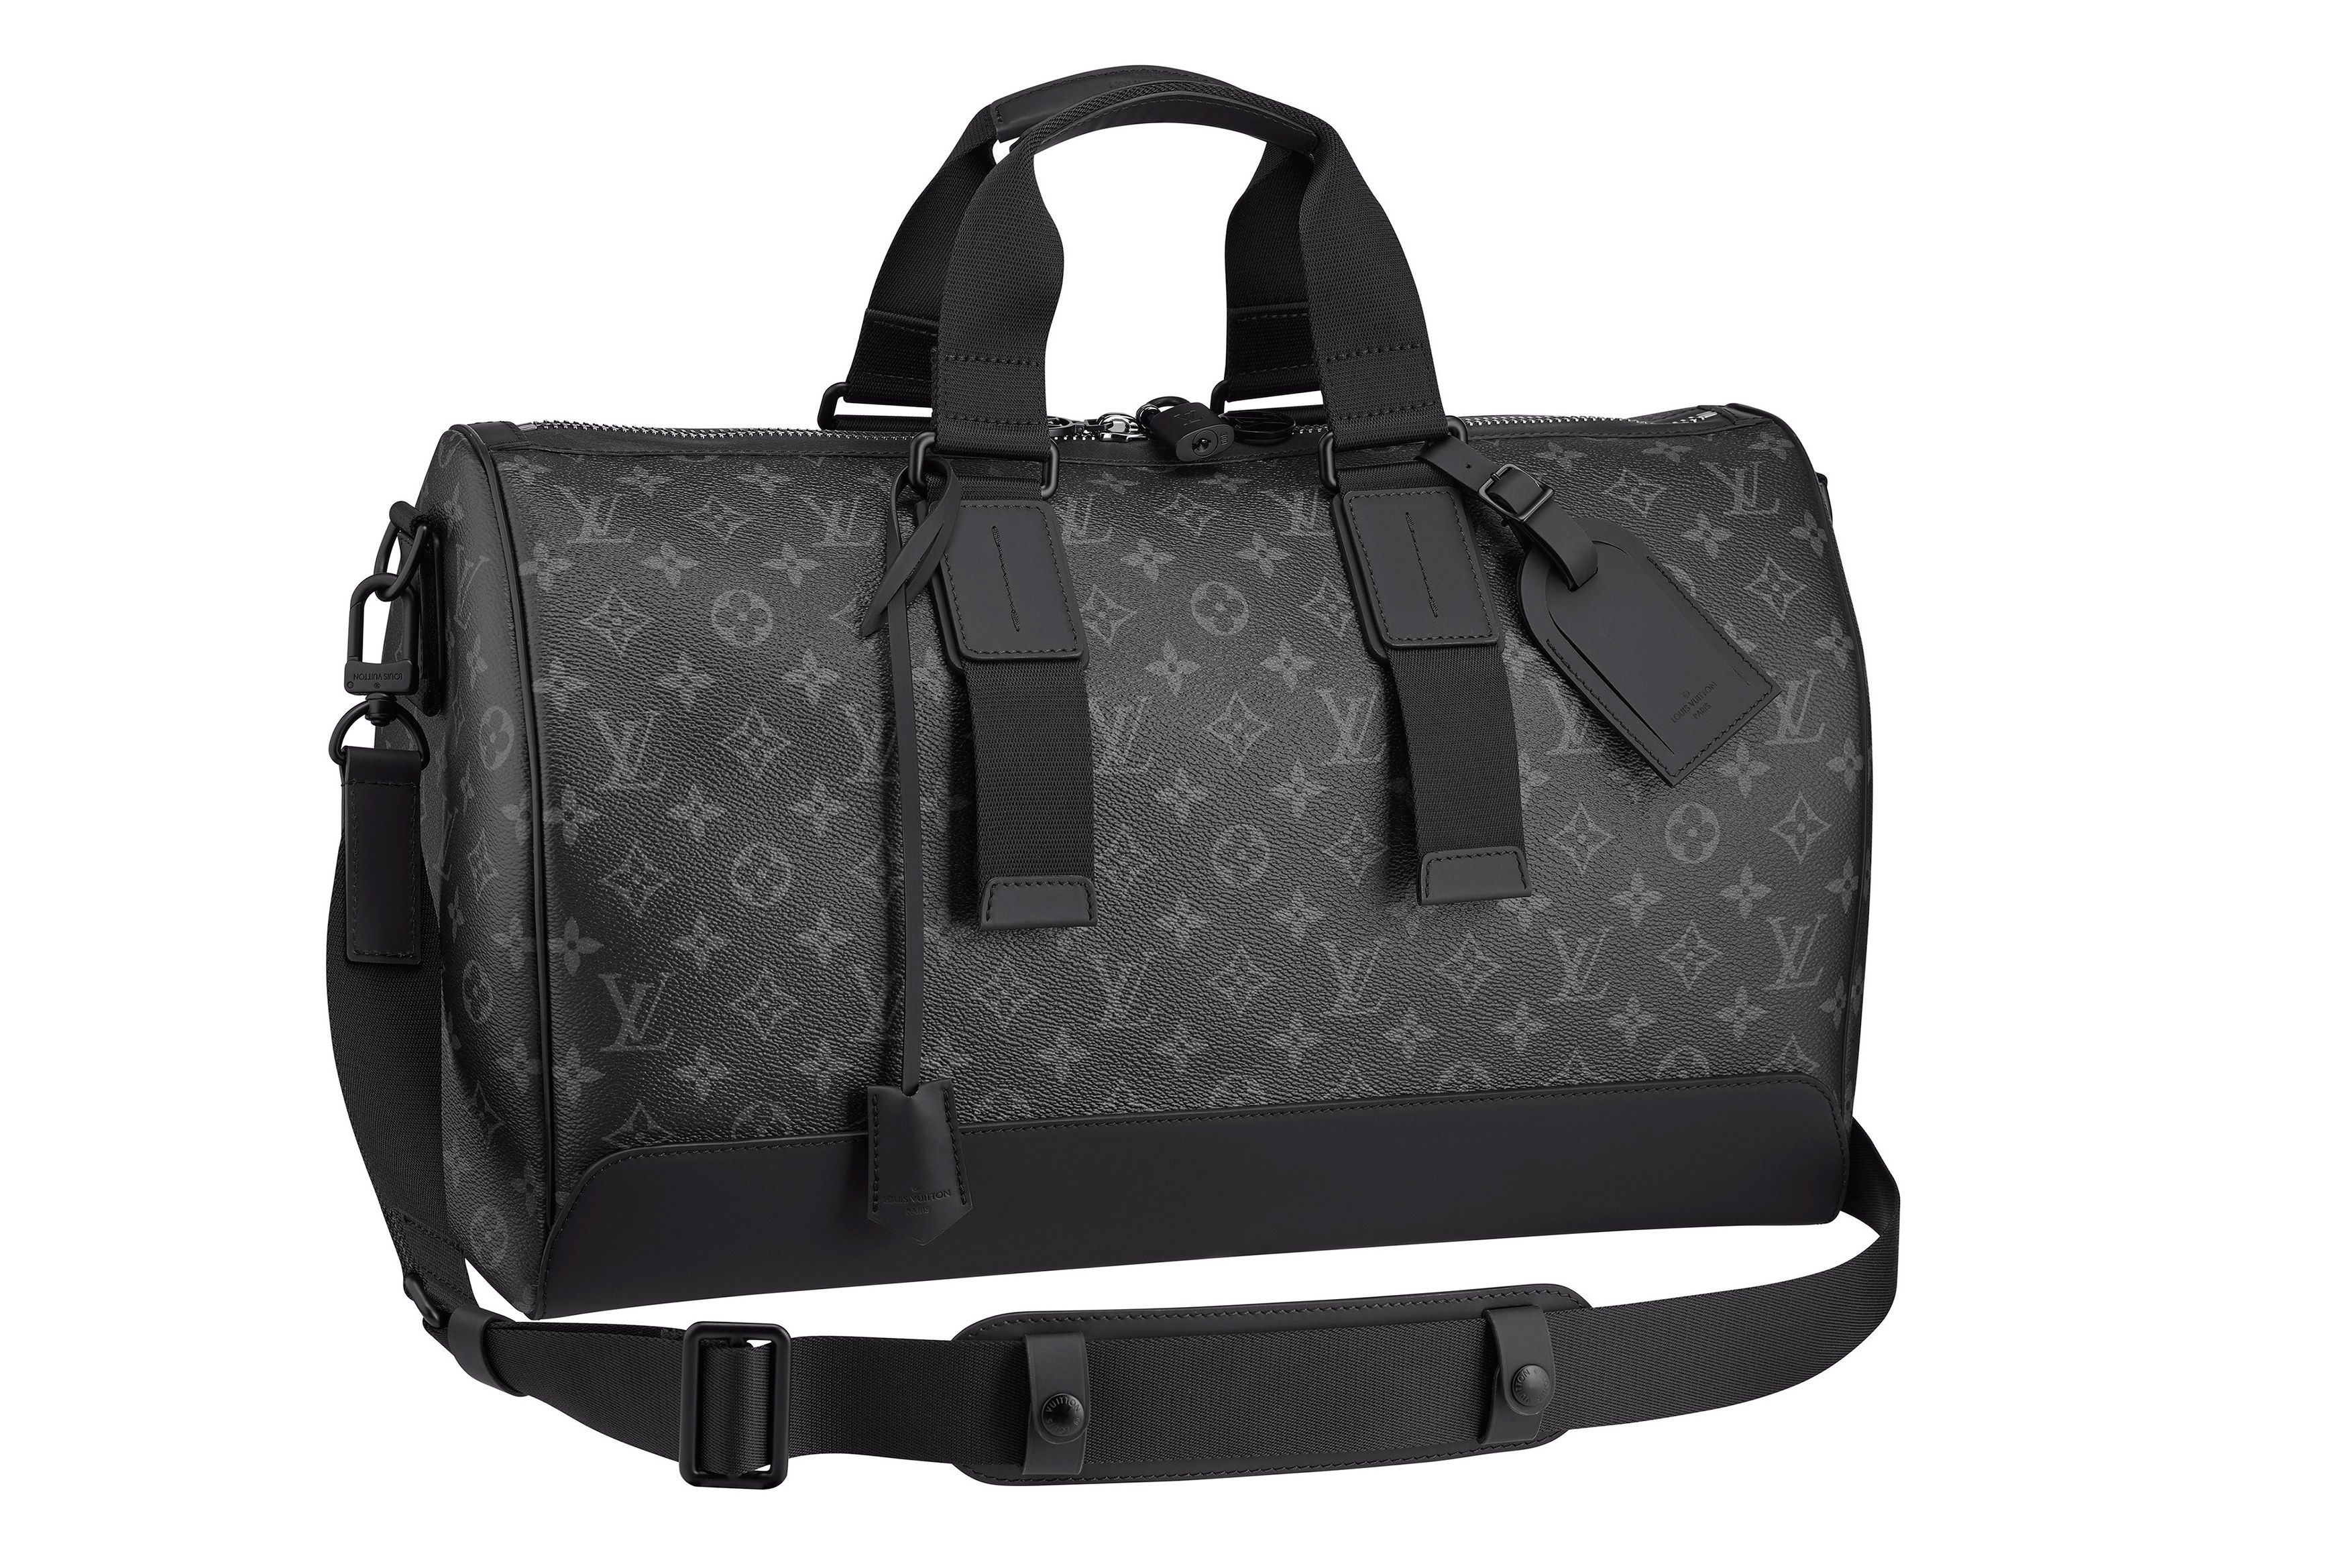 72dda9542849 Every Slick Piece From Louis Vuitton s New Monogram Eclipse ...